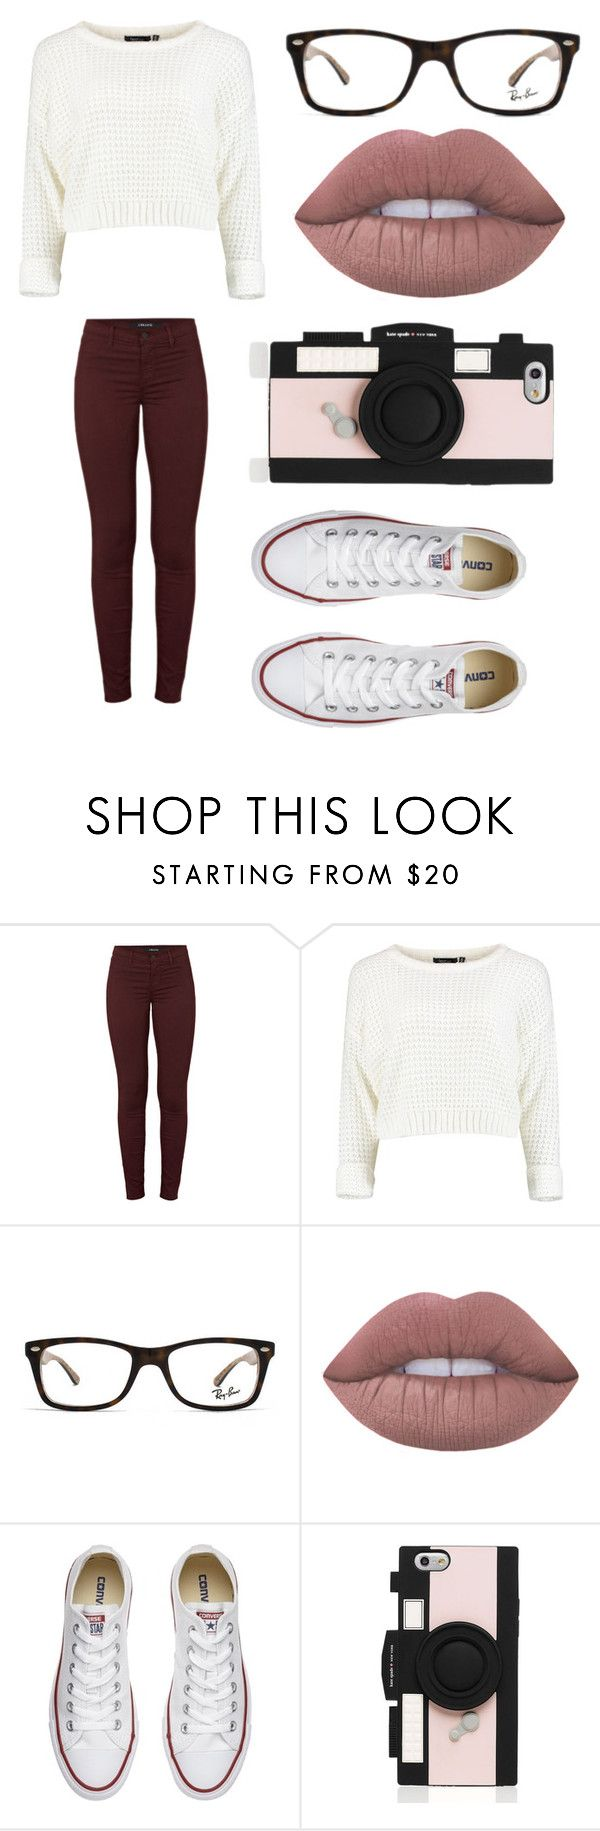 """""""Untitled #40"""" by marissaelizabeth13 ❤ liked on Polyvore featuring J Brand, Ray-Ban, Lime Crime, Converse and Kate Spade"""